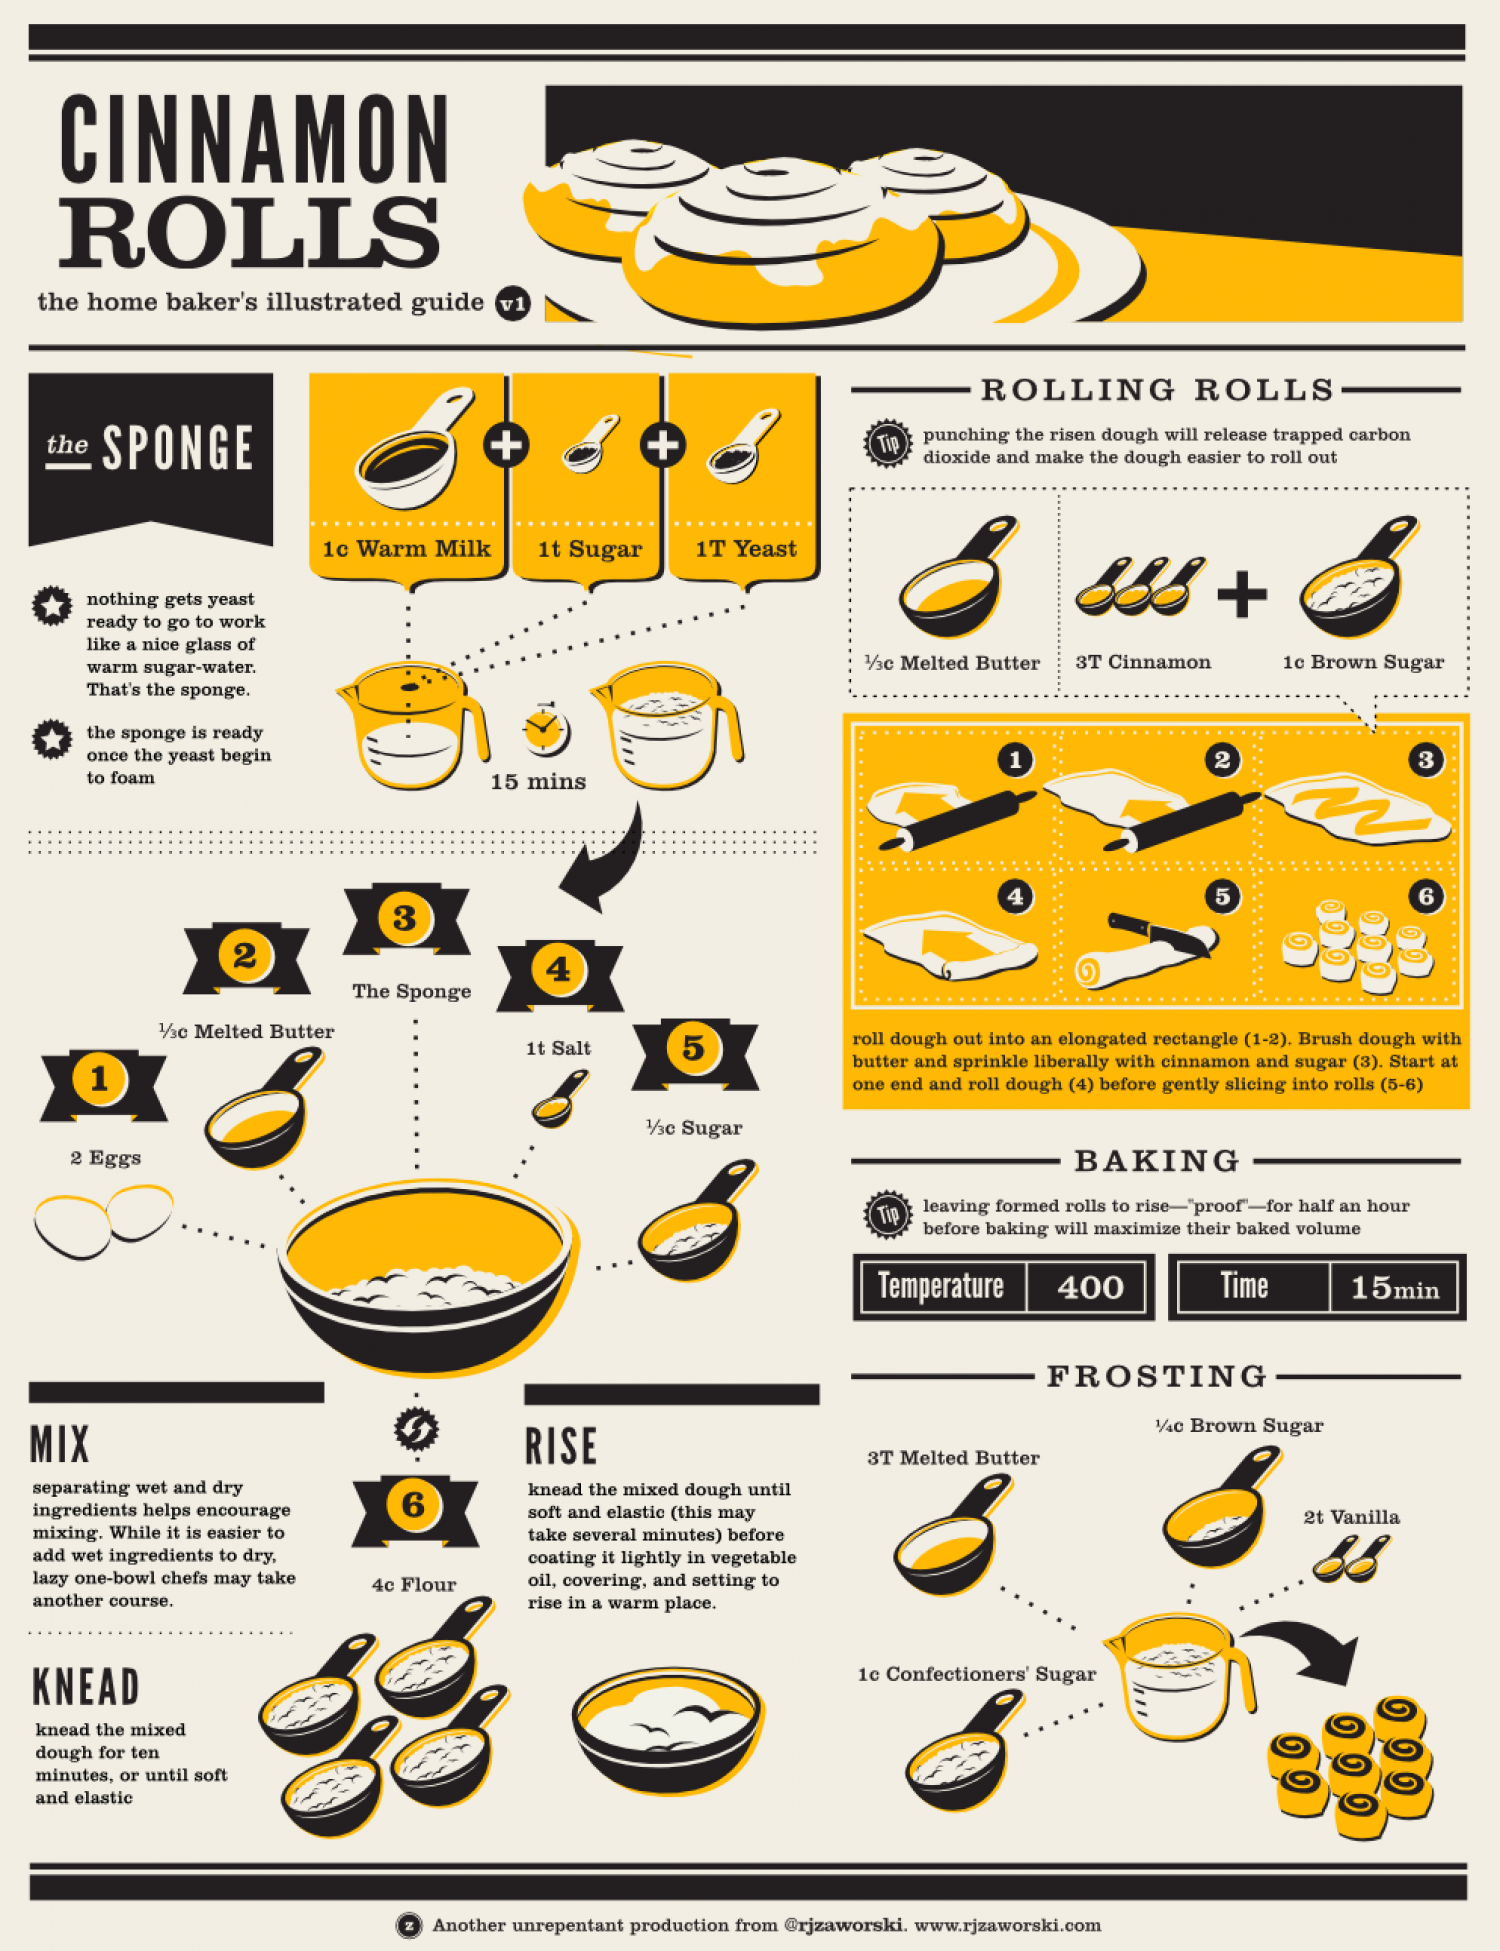 Baking Cinnamon Rolls Infographic